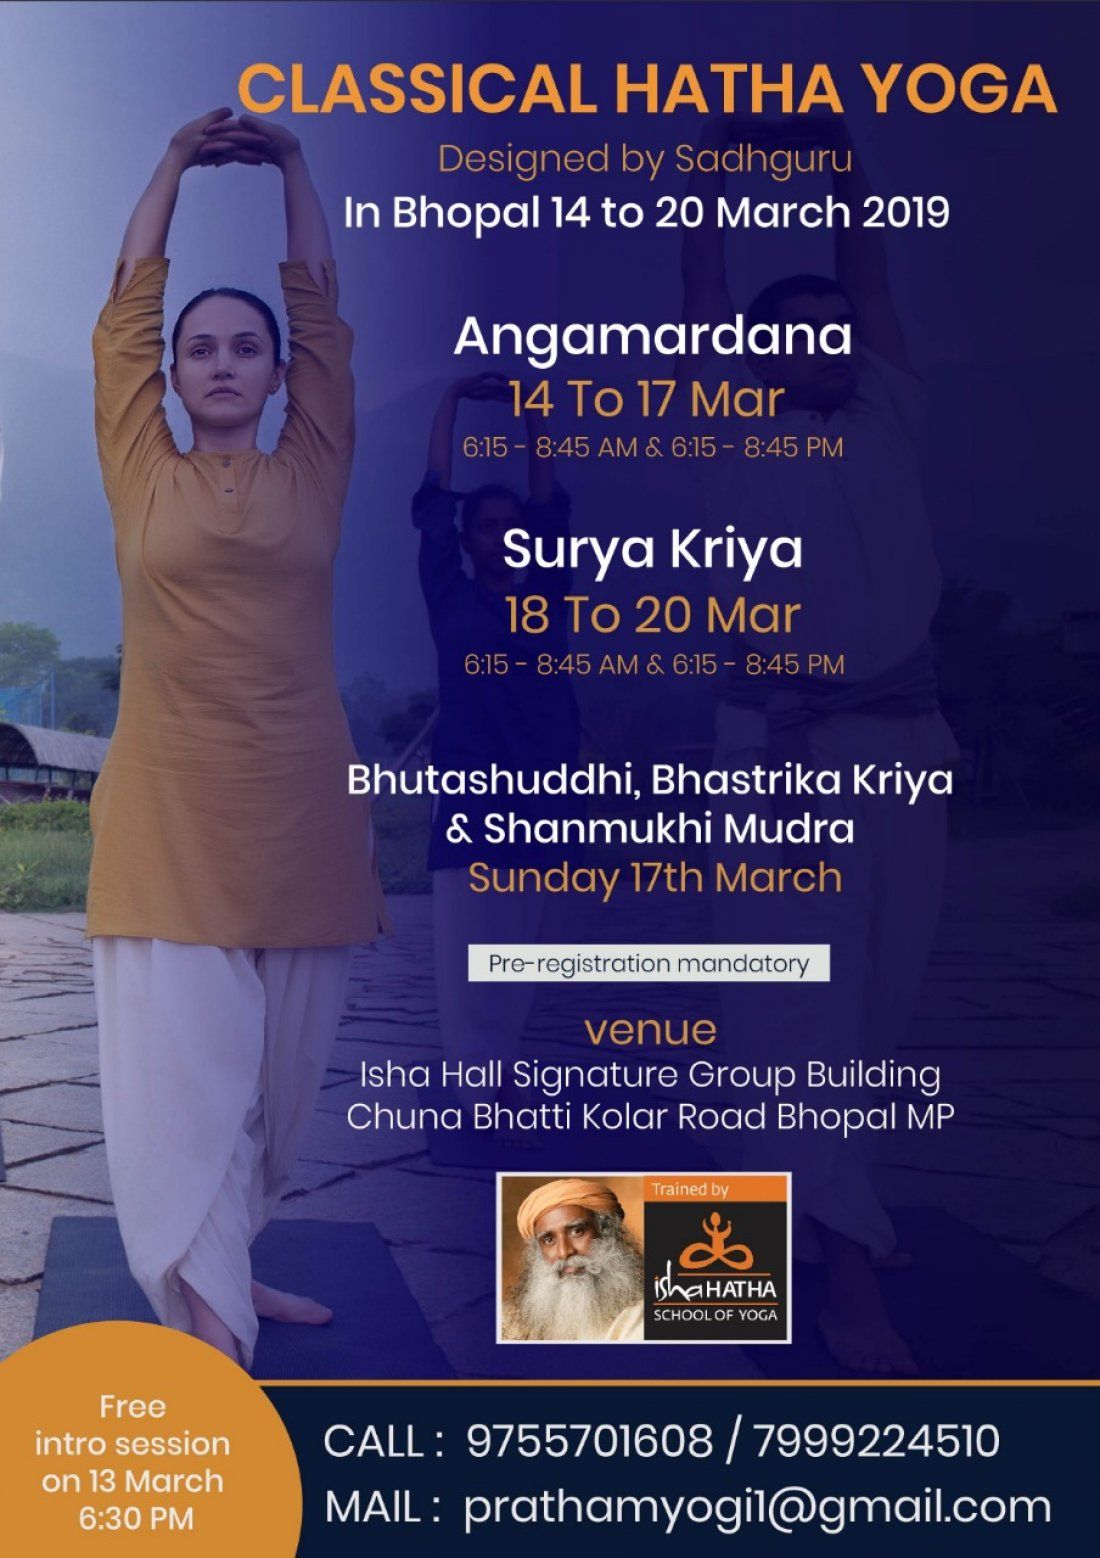 Classical Hatha Yoga Desinged by Sadhguru In Bhopal 14-20 March